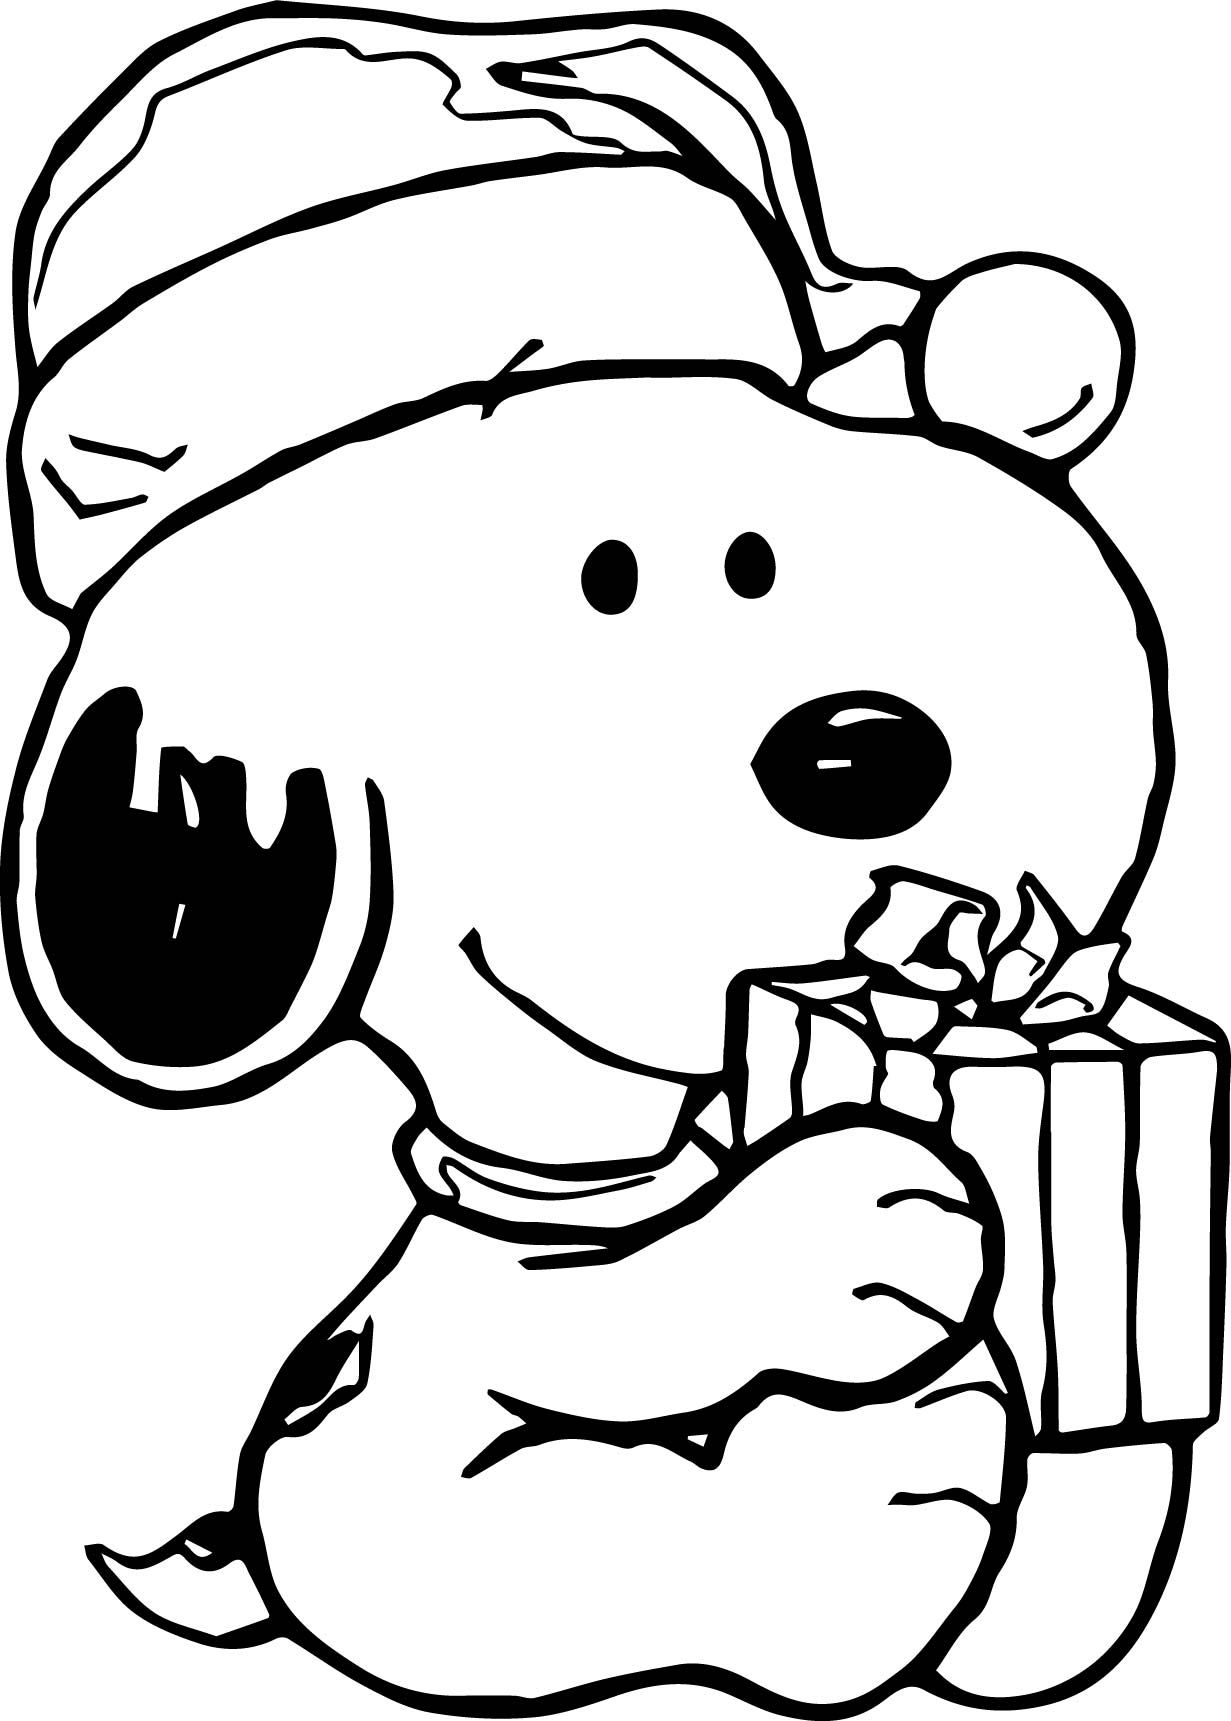 cool Baby Snoopy Christmas Coloring Page | Snoopy coloring ...